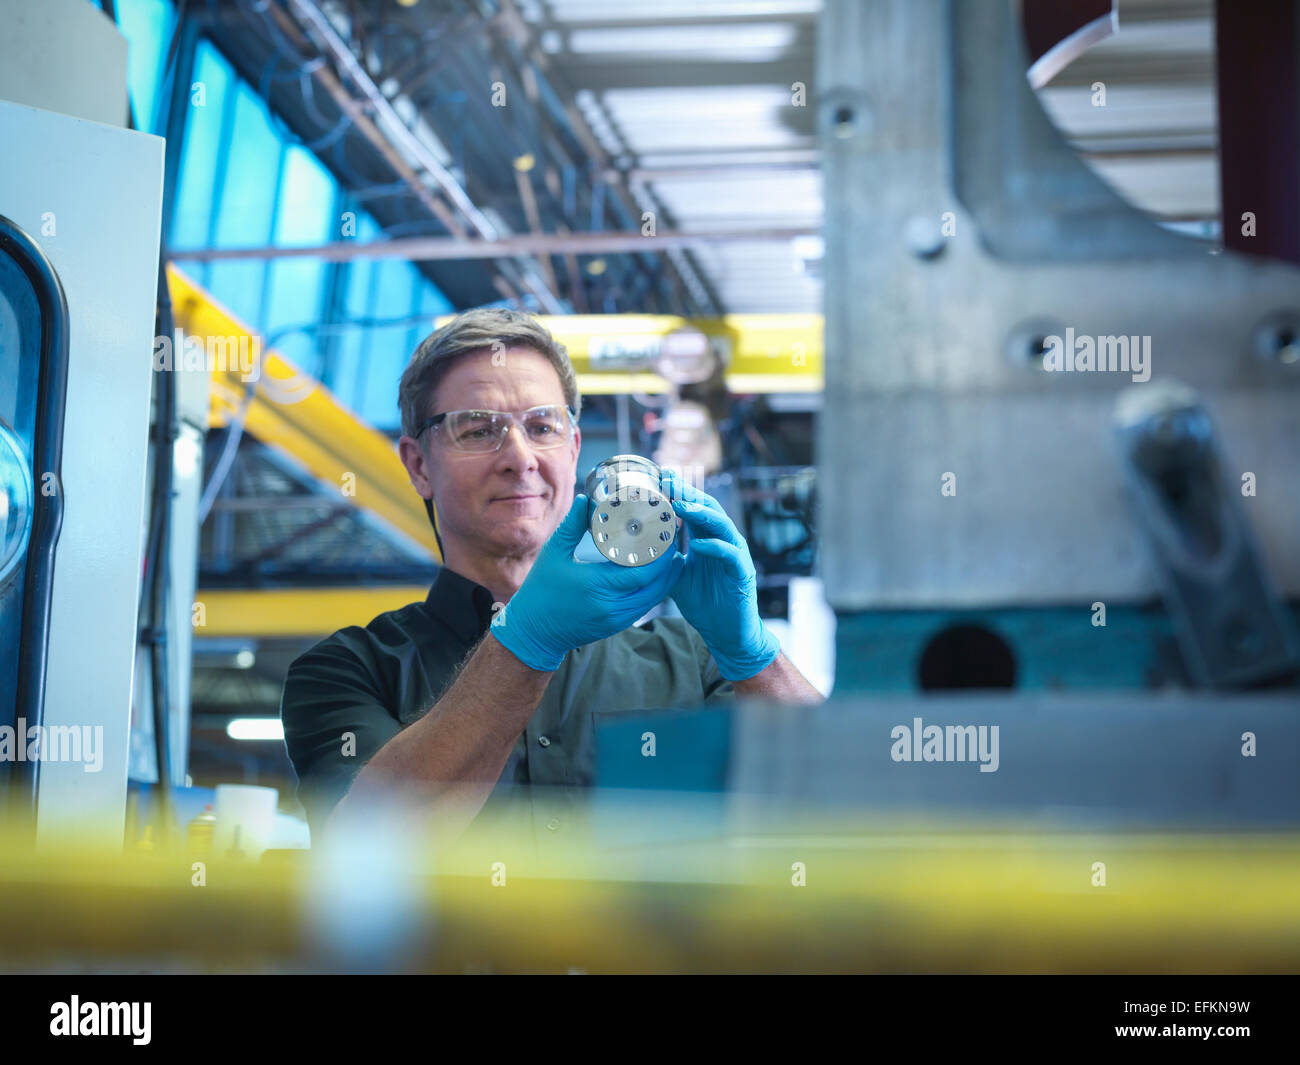 Engineer inspecting part in factory - Stock Image